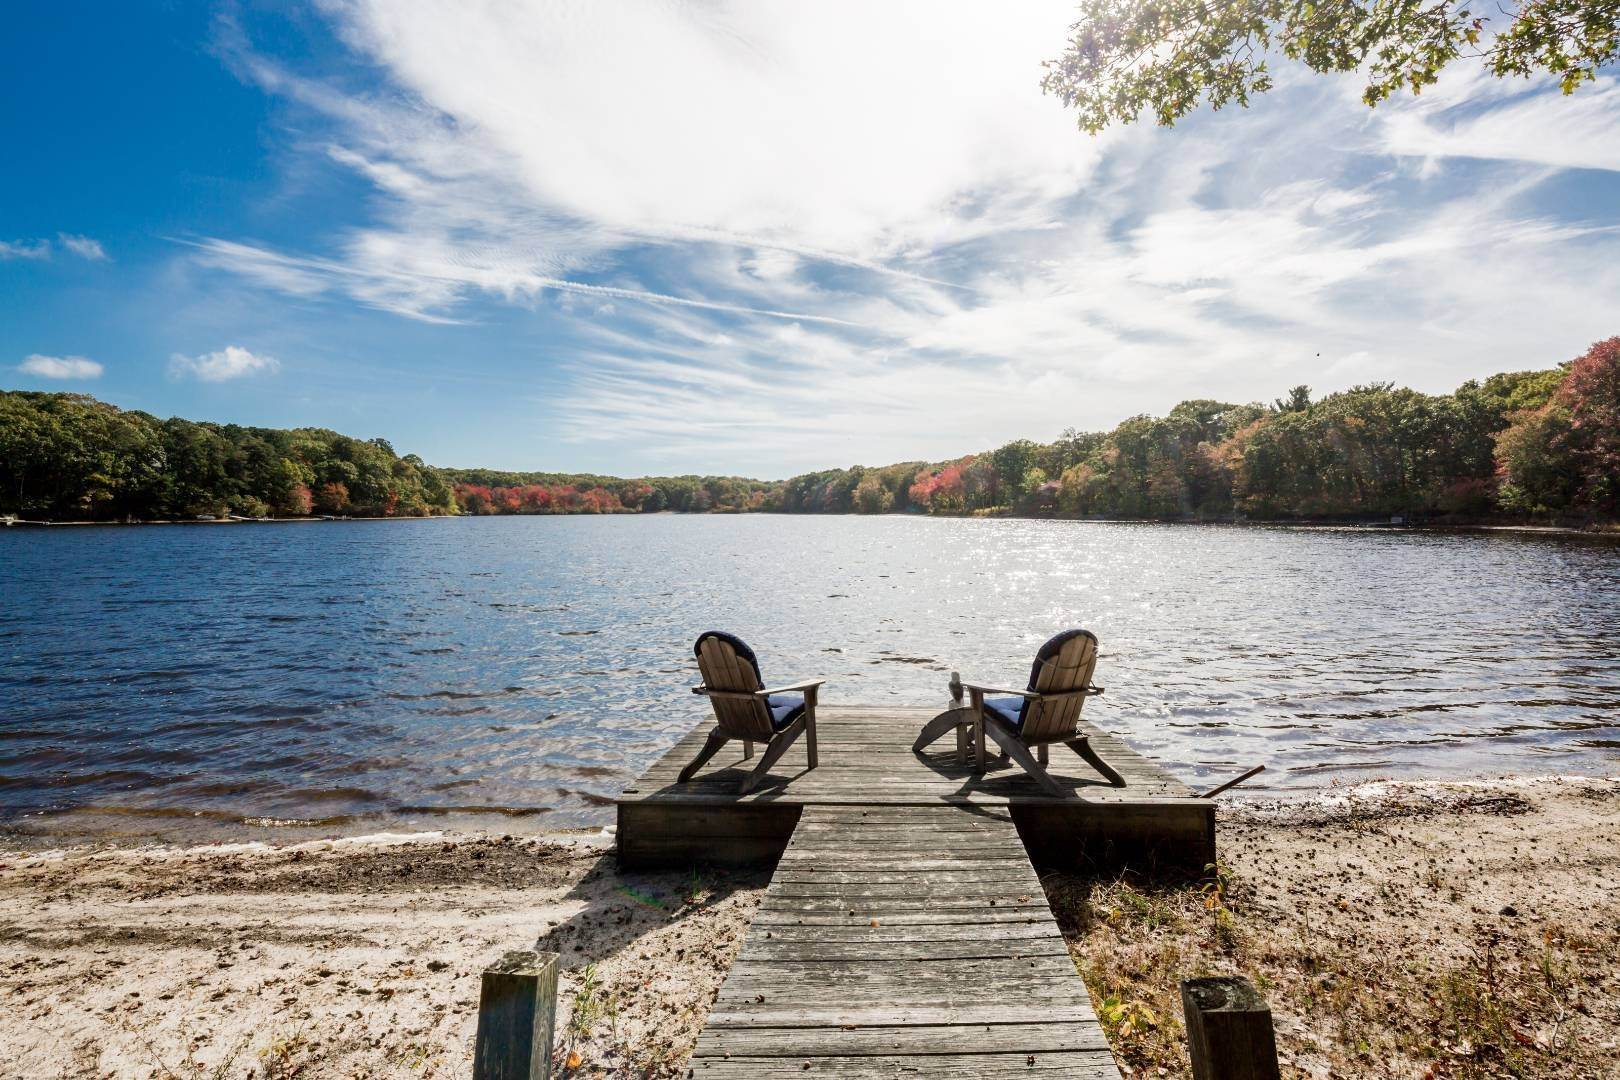 Single Family Home for Sale at Charming Cottage On Fresh Pond With Dock 70 Little Fresh Pond Road, Southampton, NY 11968